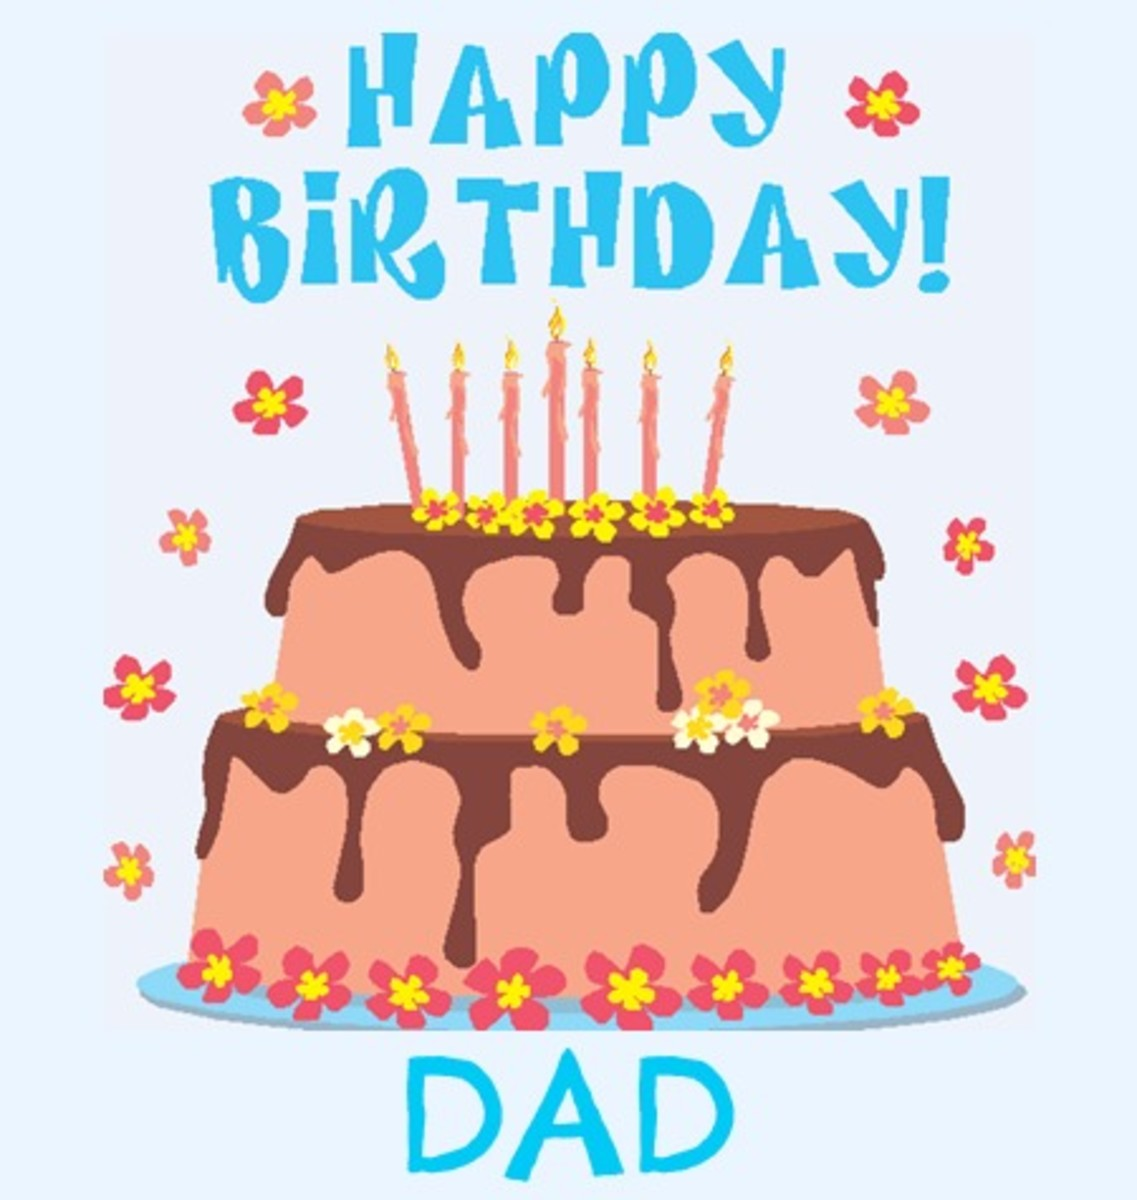 Happy birthday dad free birthday greetings cards messages happy birthday dad m4hsunfo